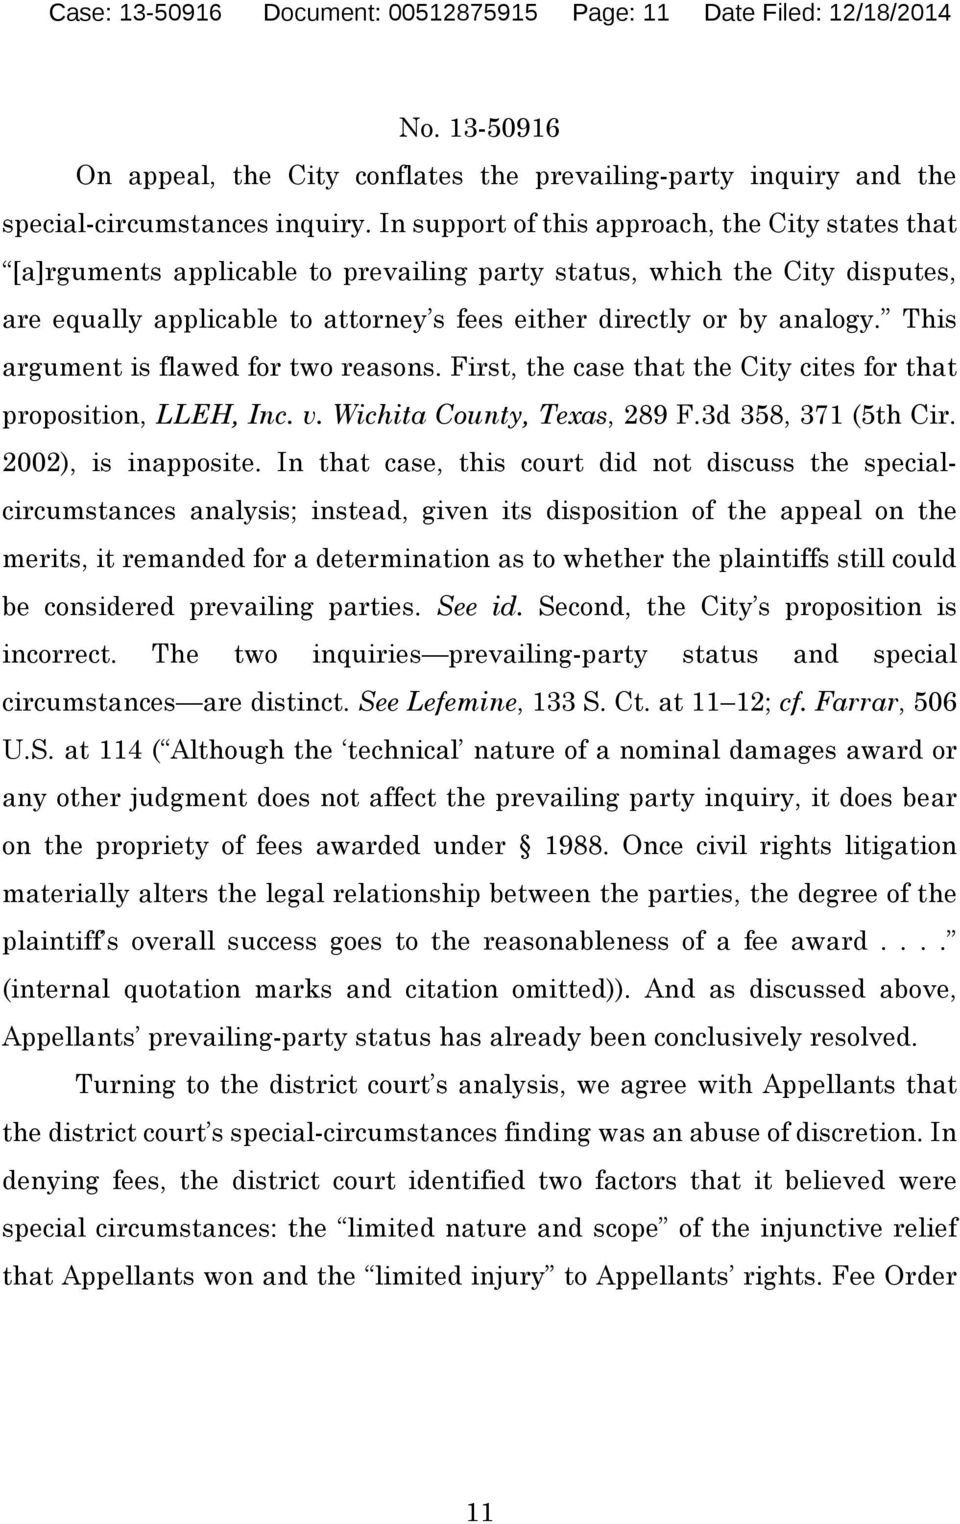 This argument is flawed for two reasons. First, the case that the City cites for that proposition, LLEH, Inc. v. Wichita County, Texas, 289 F.3d 358, 371 (5th Cir. 2002), is inapposite.